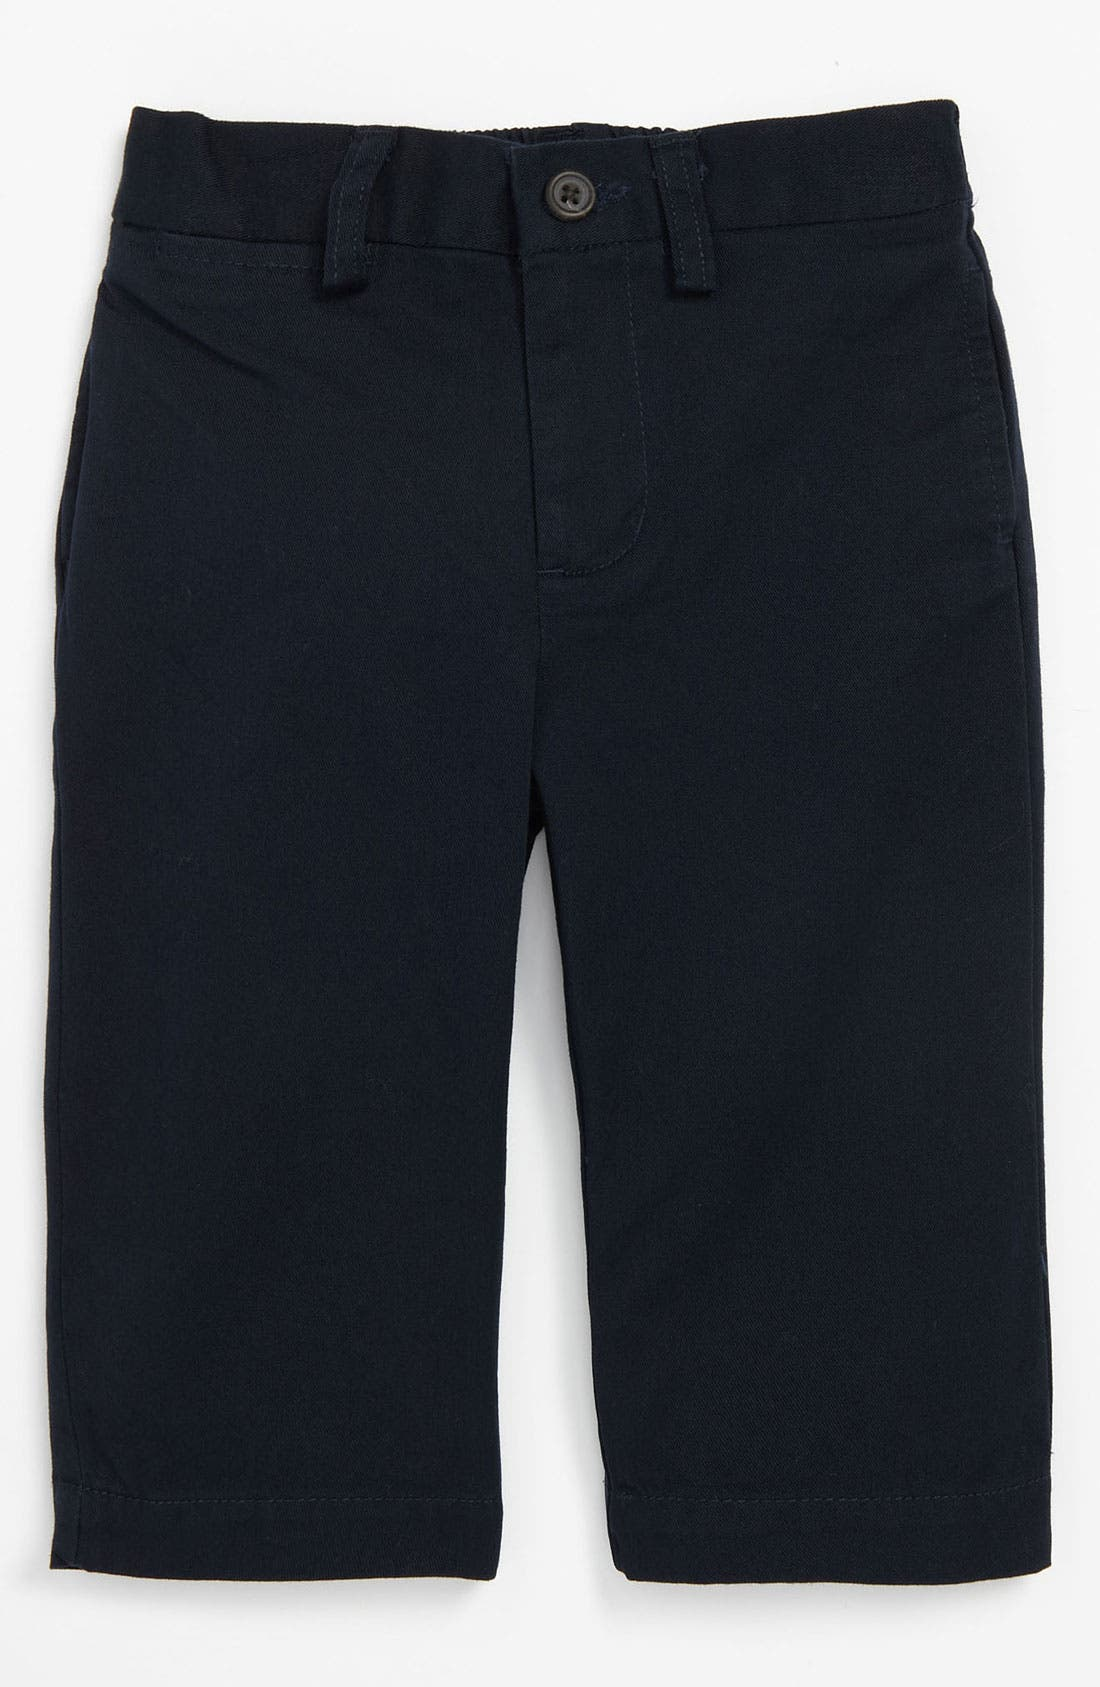 Alternate Image 1 Selected - Ralph Lauren Flat Front Pants (Baby)